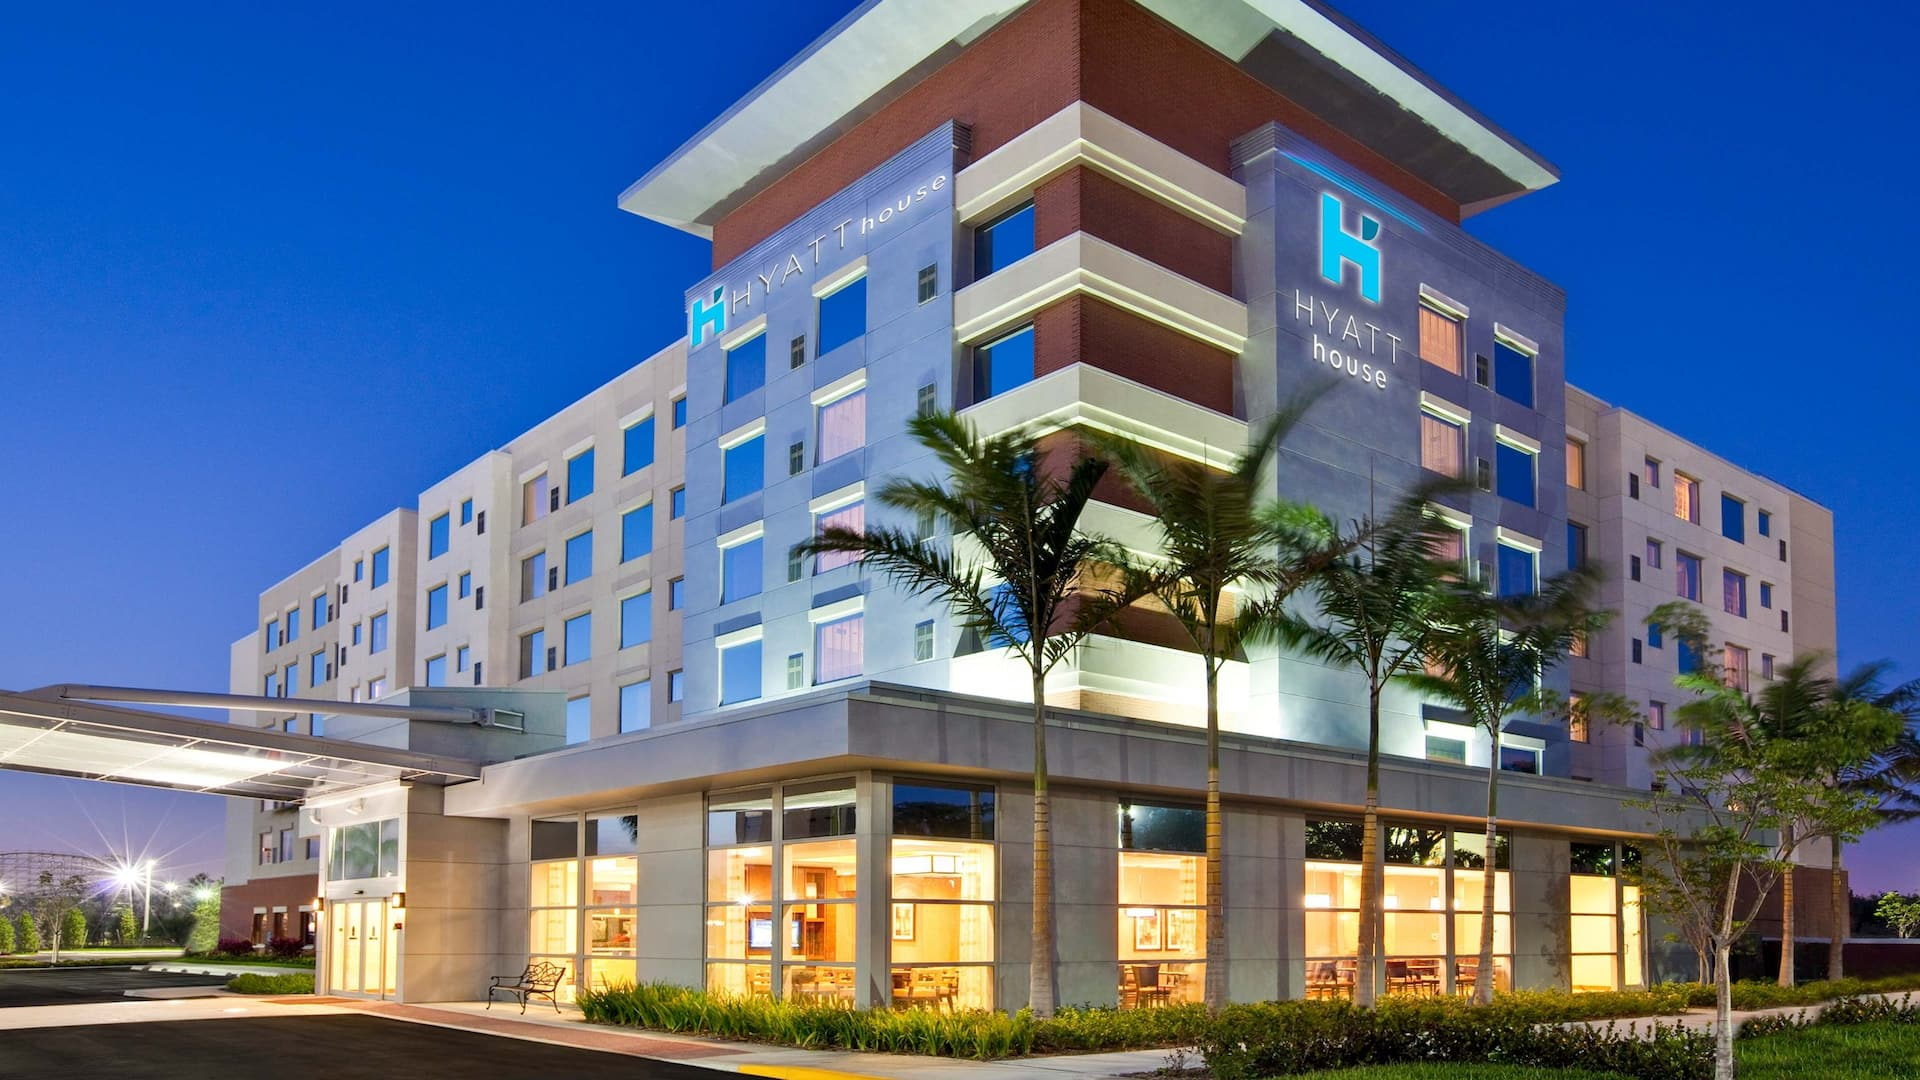 Hyatt House Fort Lauderdale Cruise Port Exterior